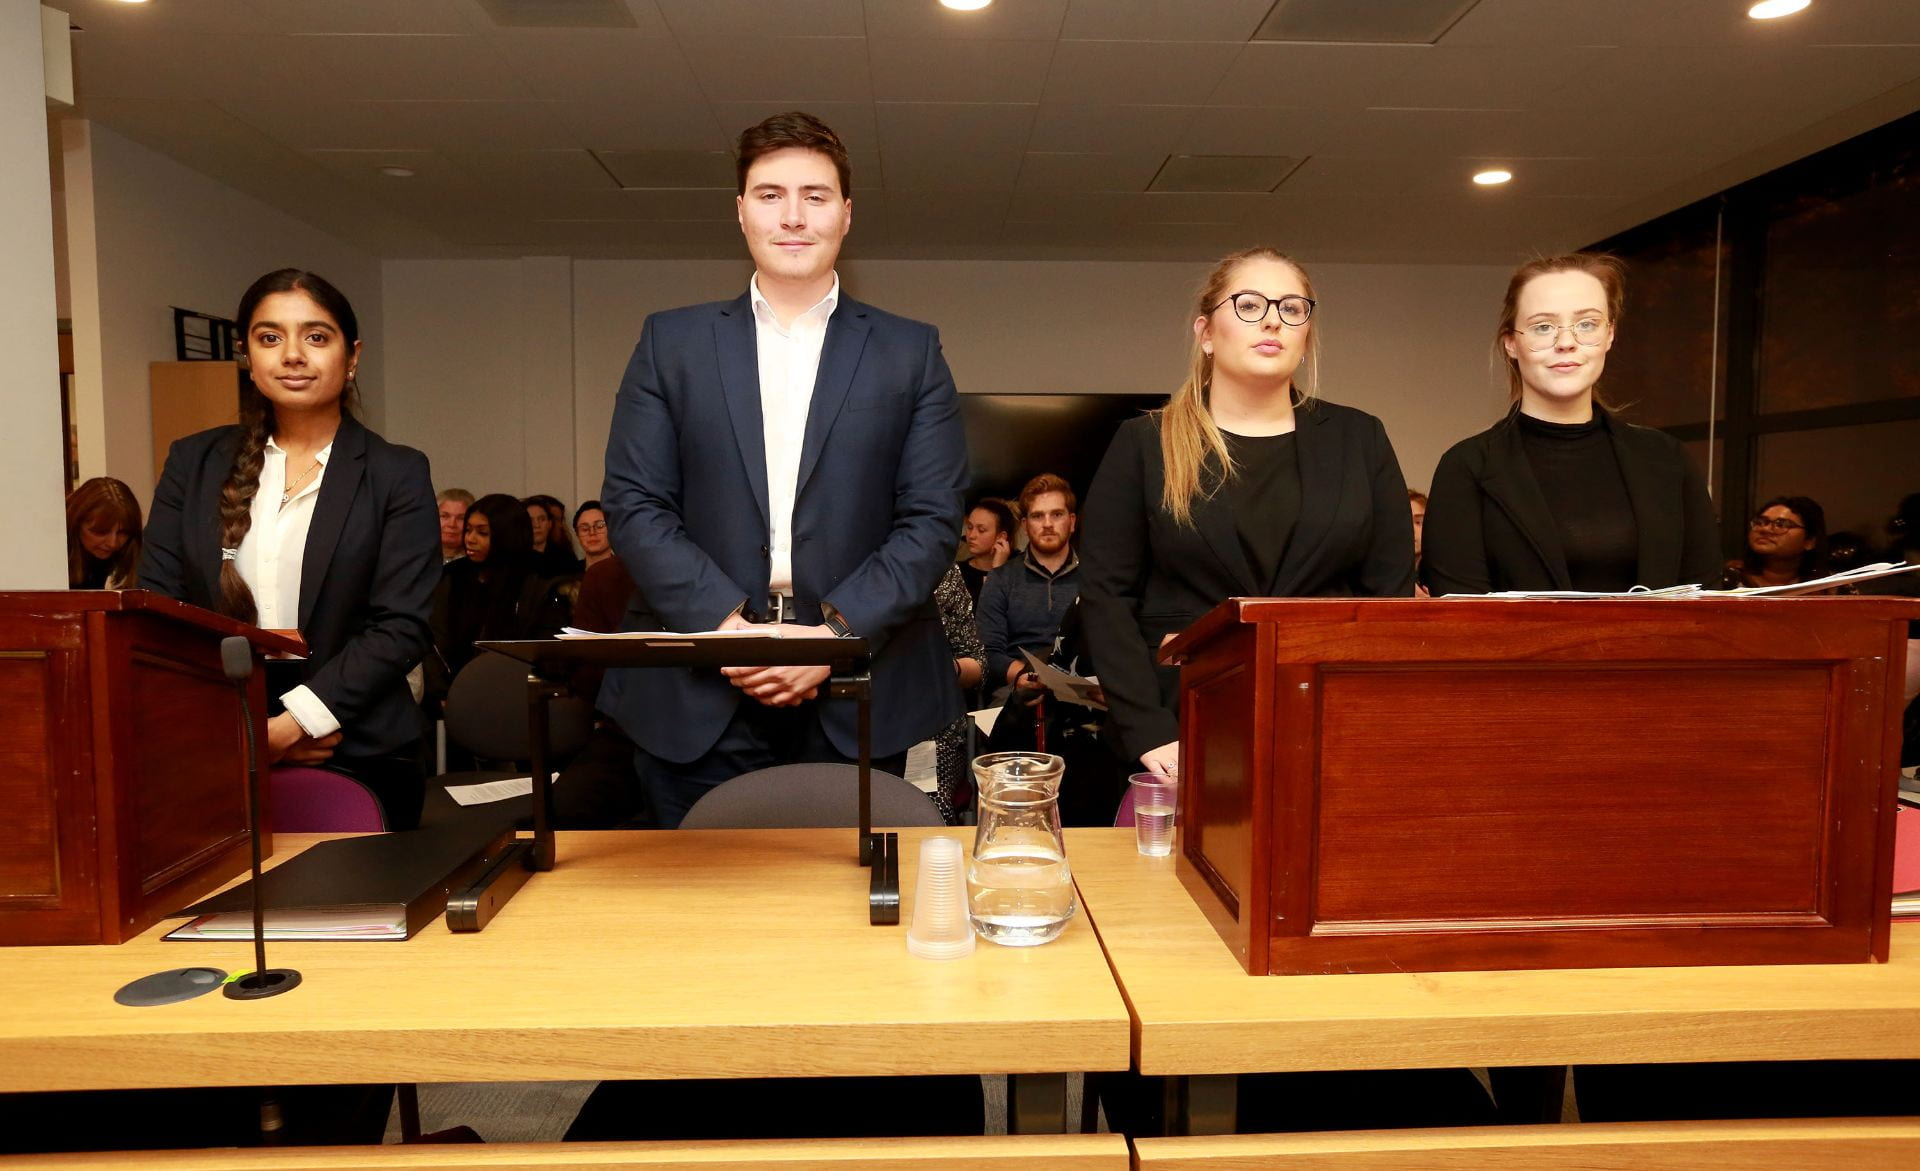 Students from Sussex and Brighton go head-to-head at the annual mooting competition.